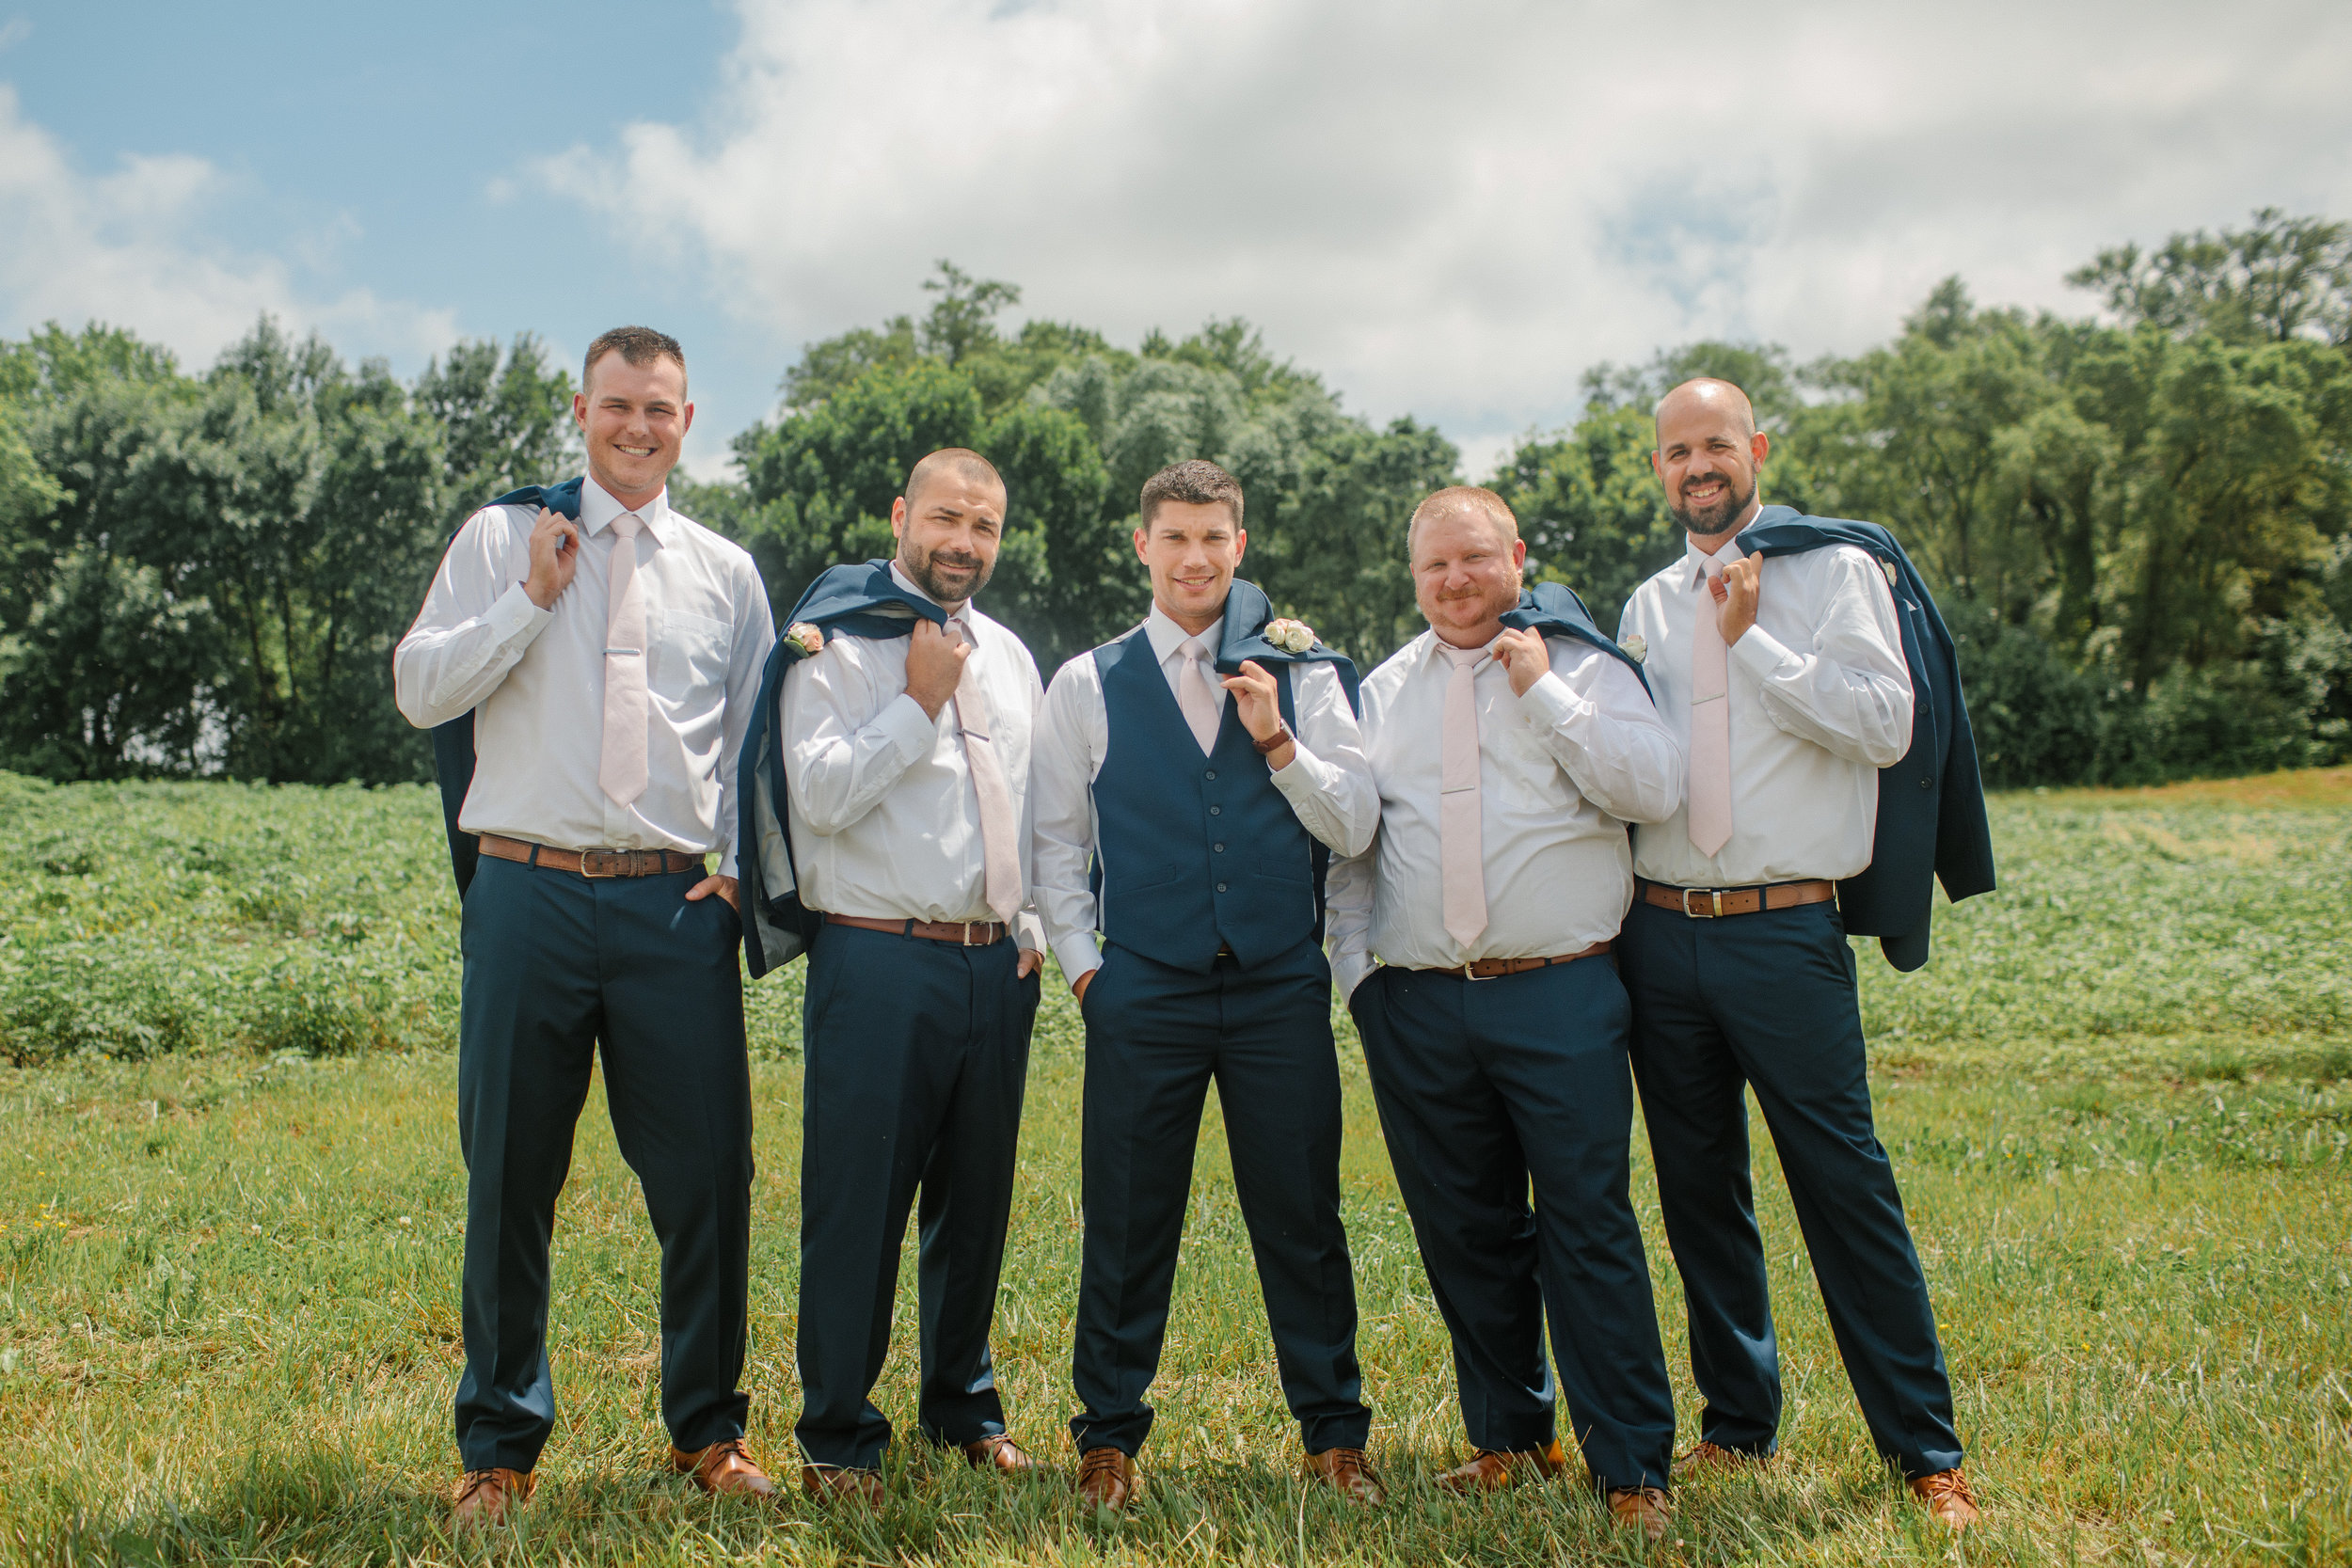 west des moines groom and groomsment in suits